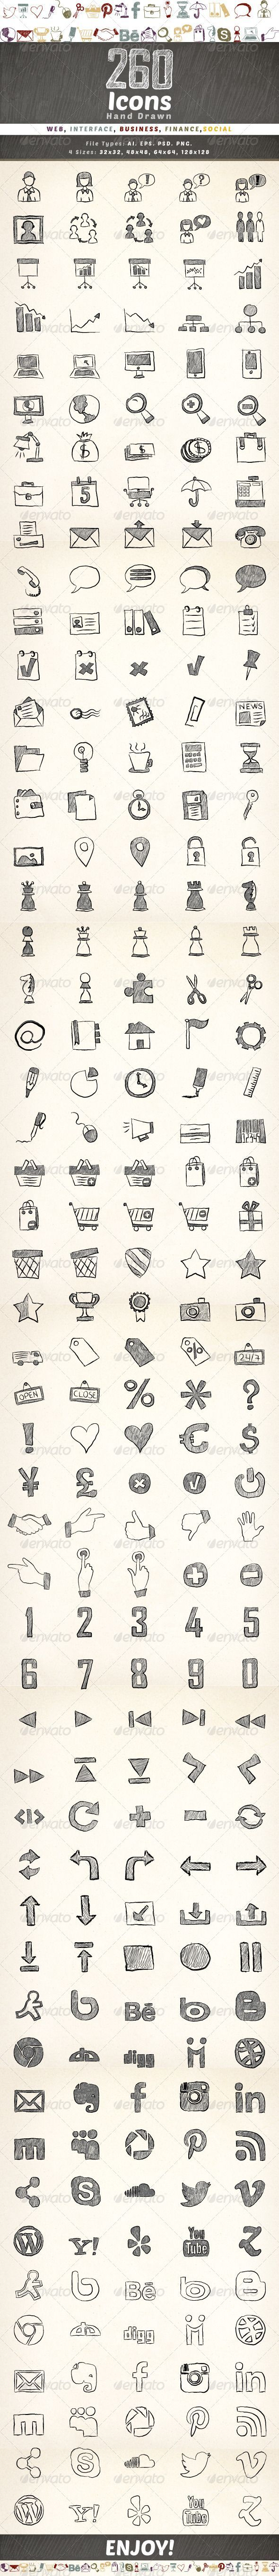 260 Hand Drawn Icons